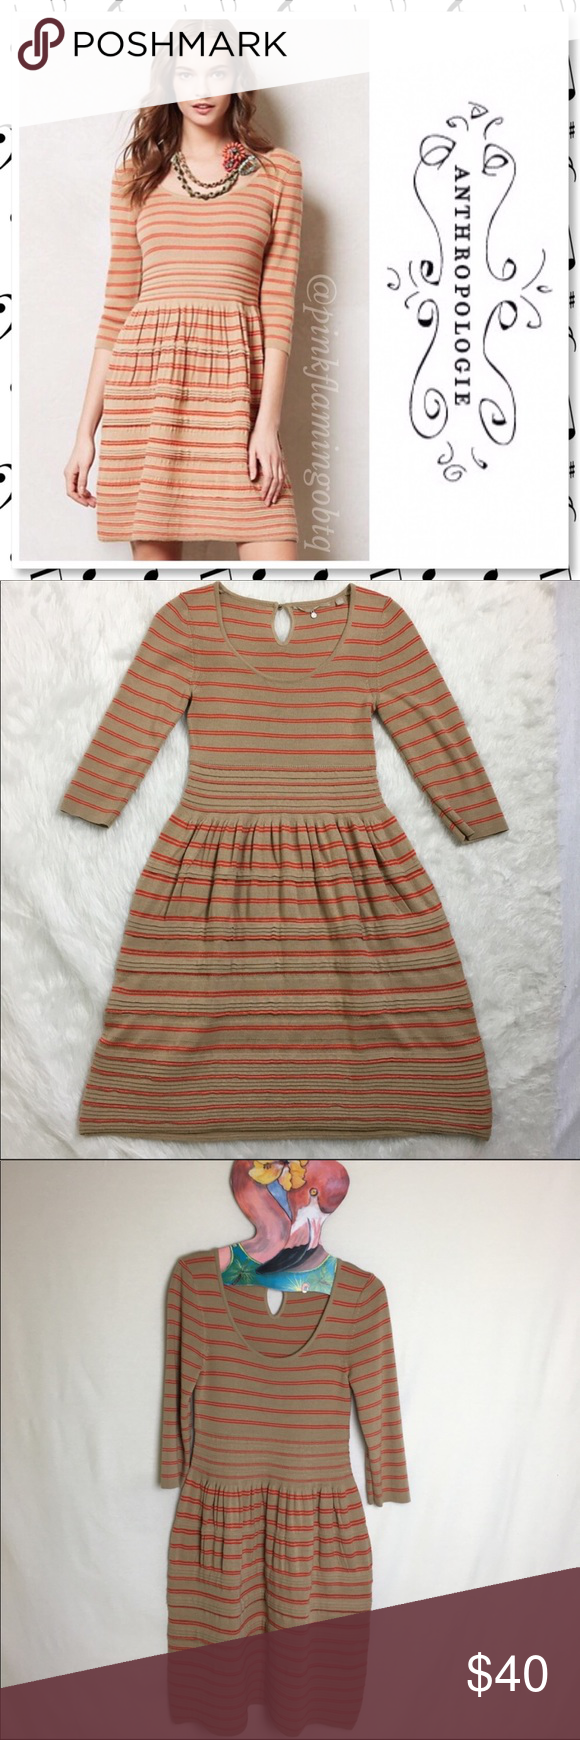 ca30a6b5733 Anthro Knitted   Knotted Elodie Sweater Dress Anthropologie Knitted and Knotted  Elodie Sweater Dress. Beige